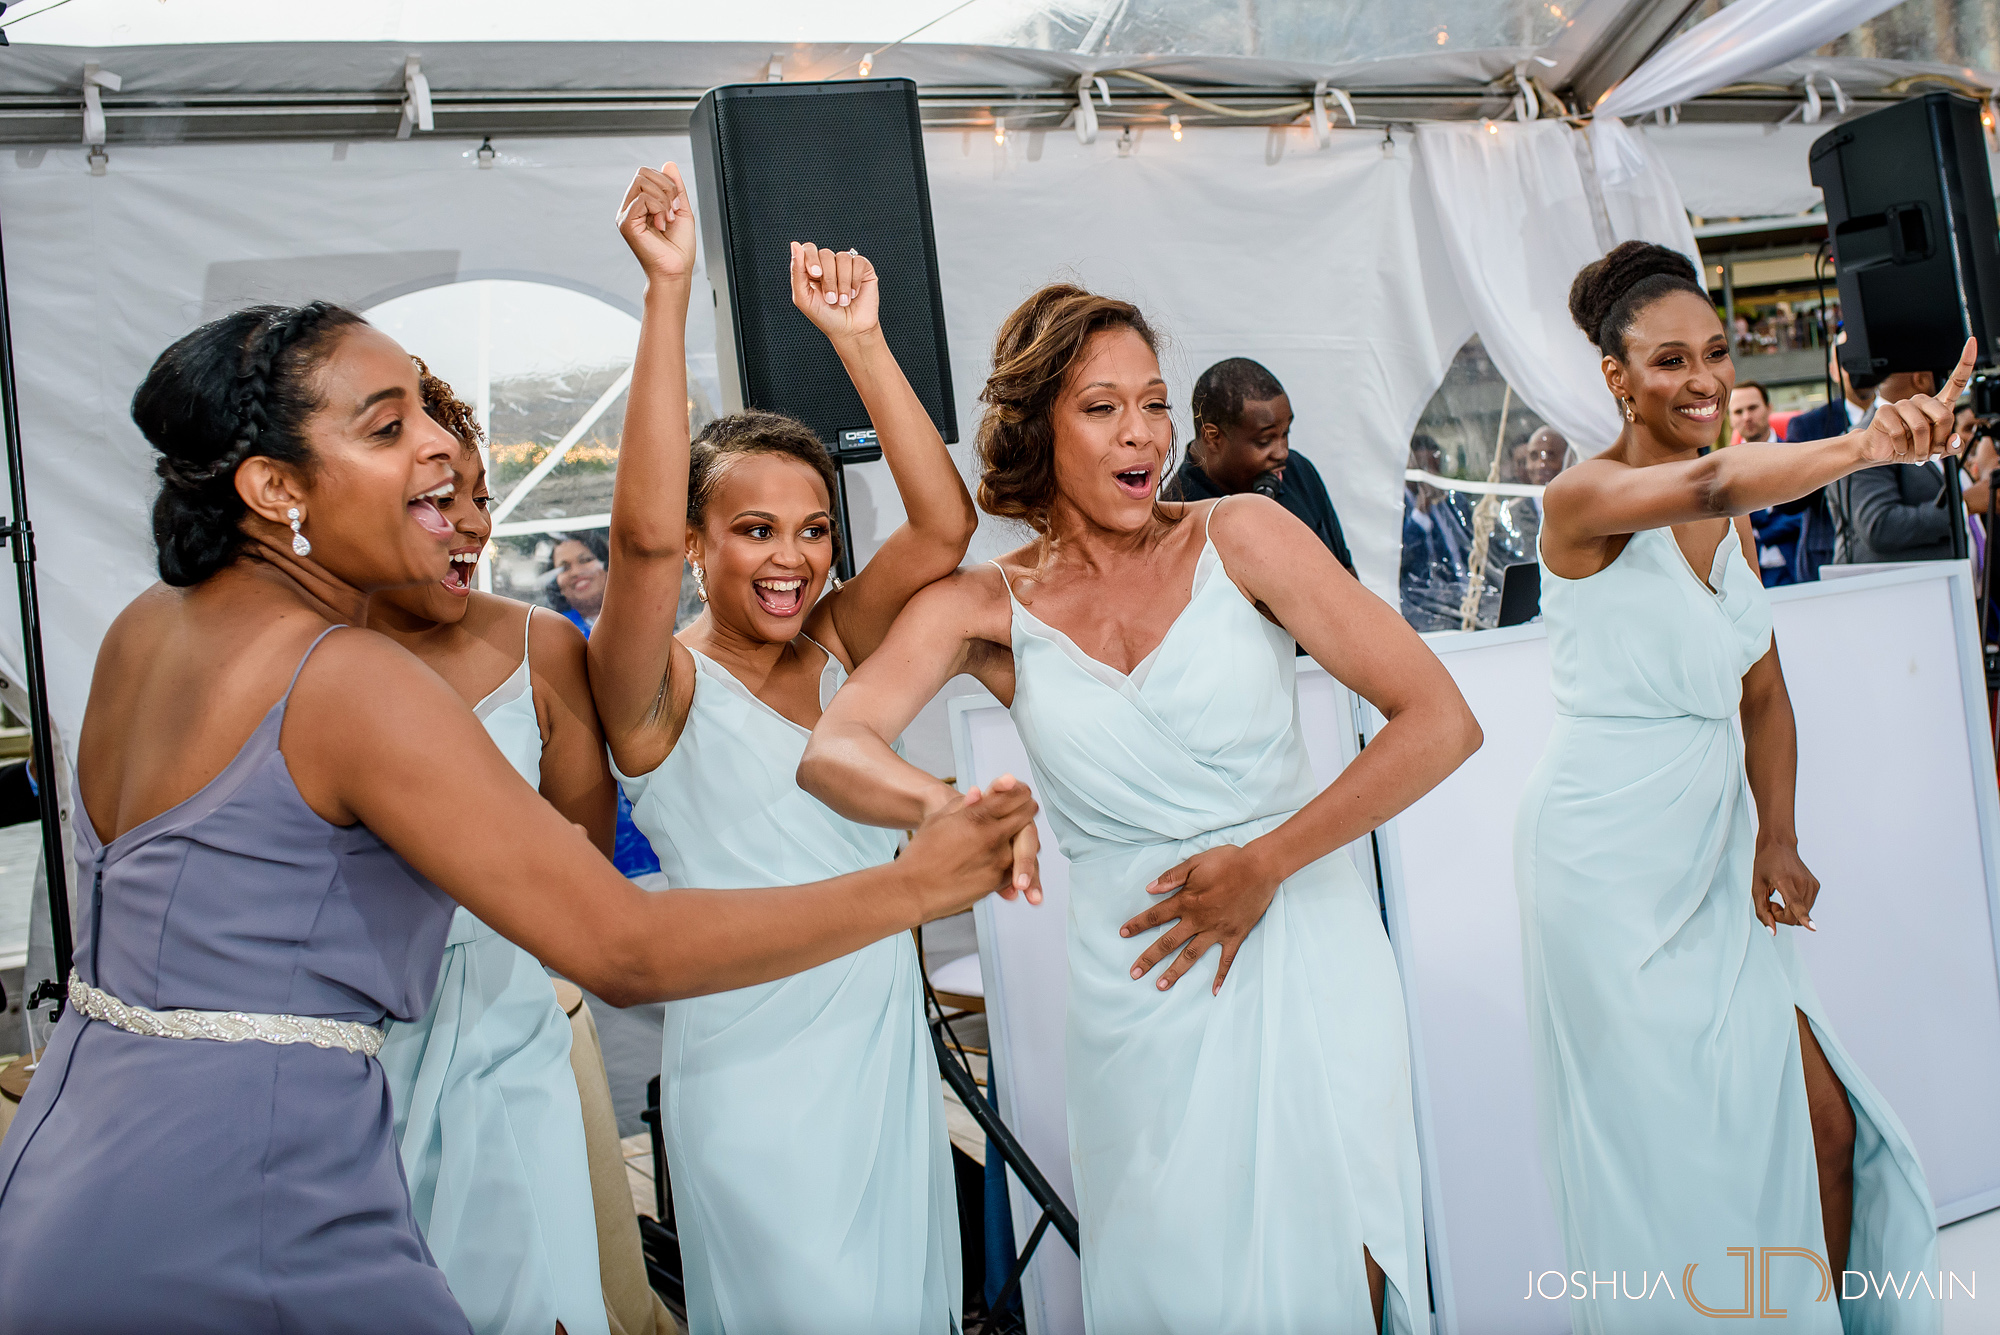 leshia-adam-029-dc-wharf-wedding-photos-joshua-dwain-photographer